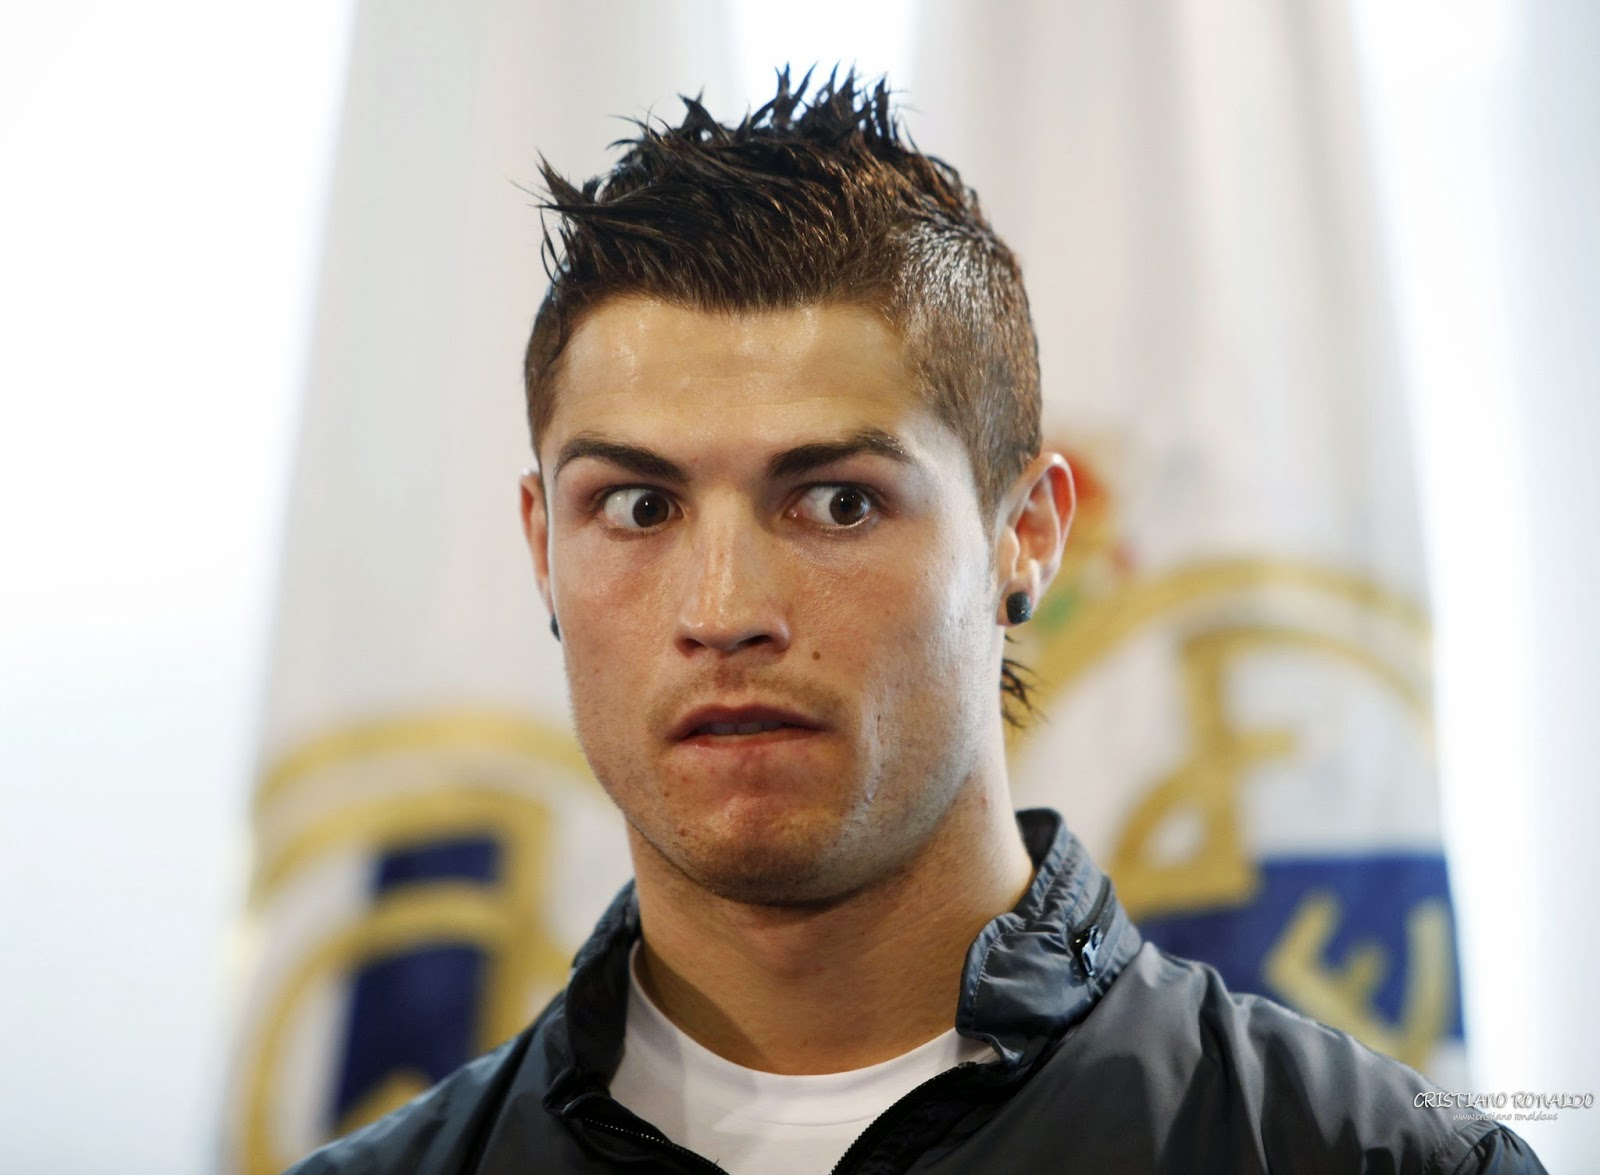 Cristiano Ronaldo Real Madrid weird look